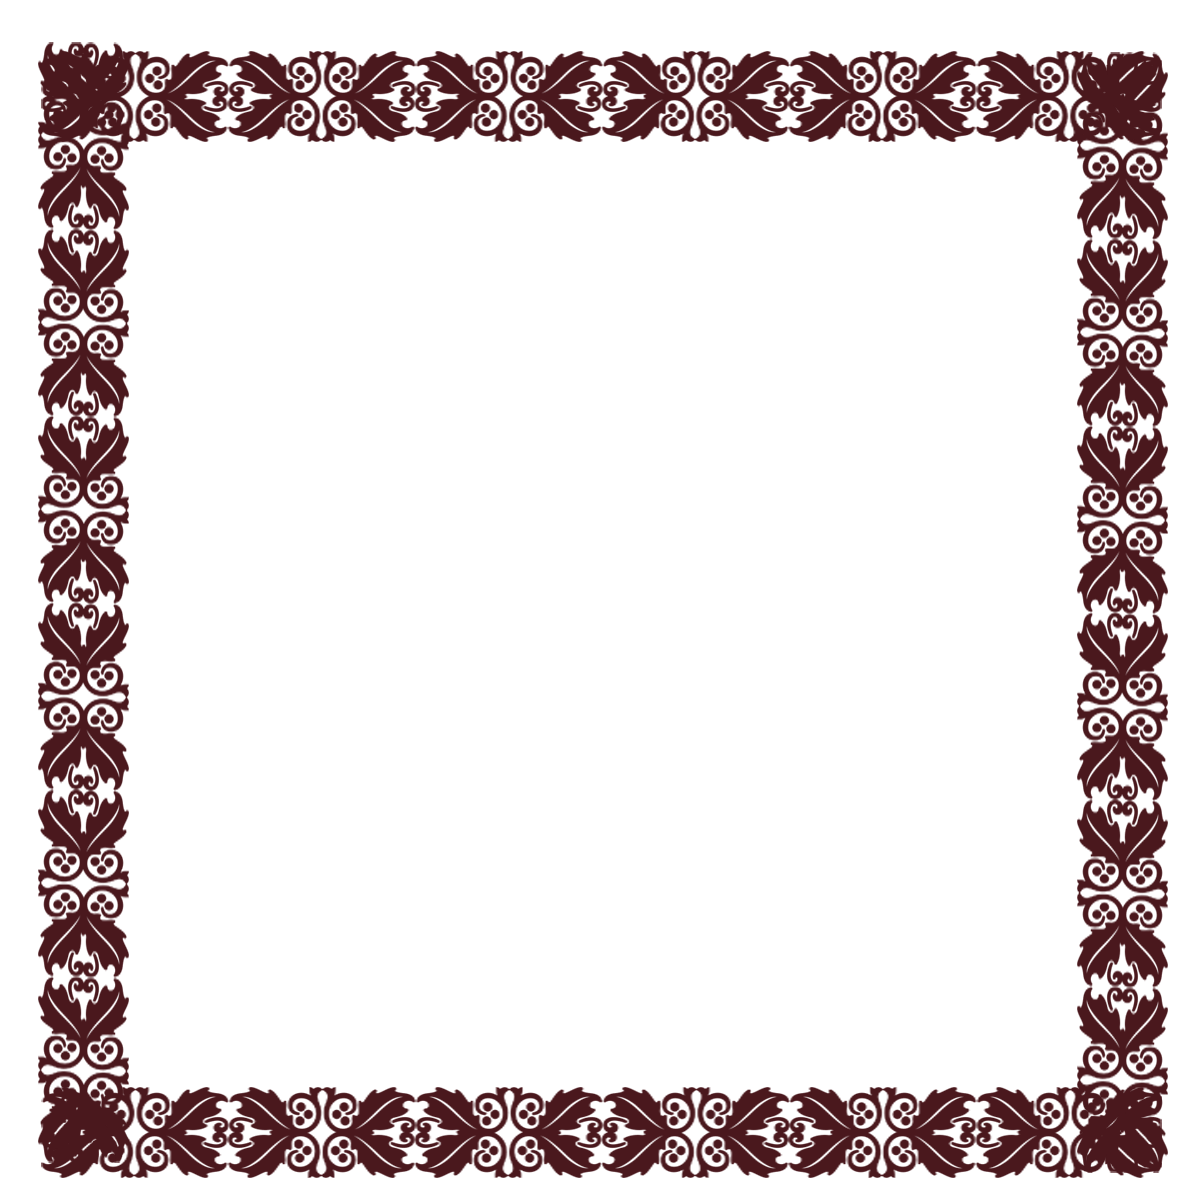 .Com Free Elements: Free Burgundy Holly PNG Digi Scrapbook Frame